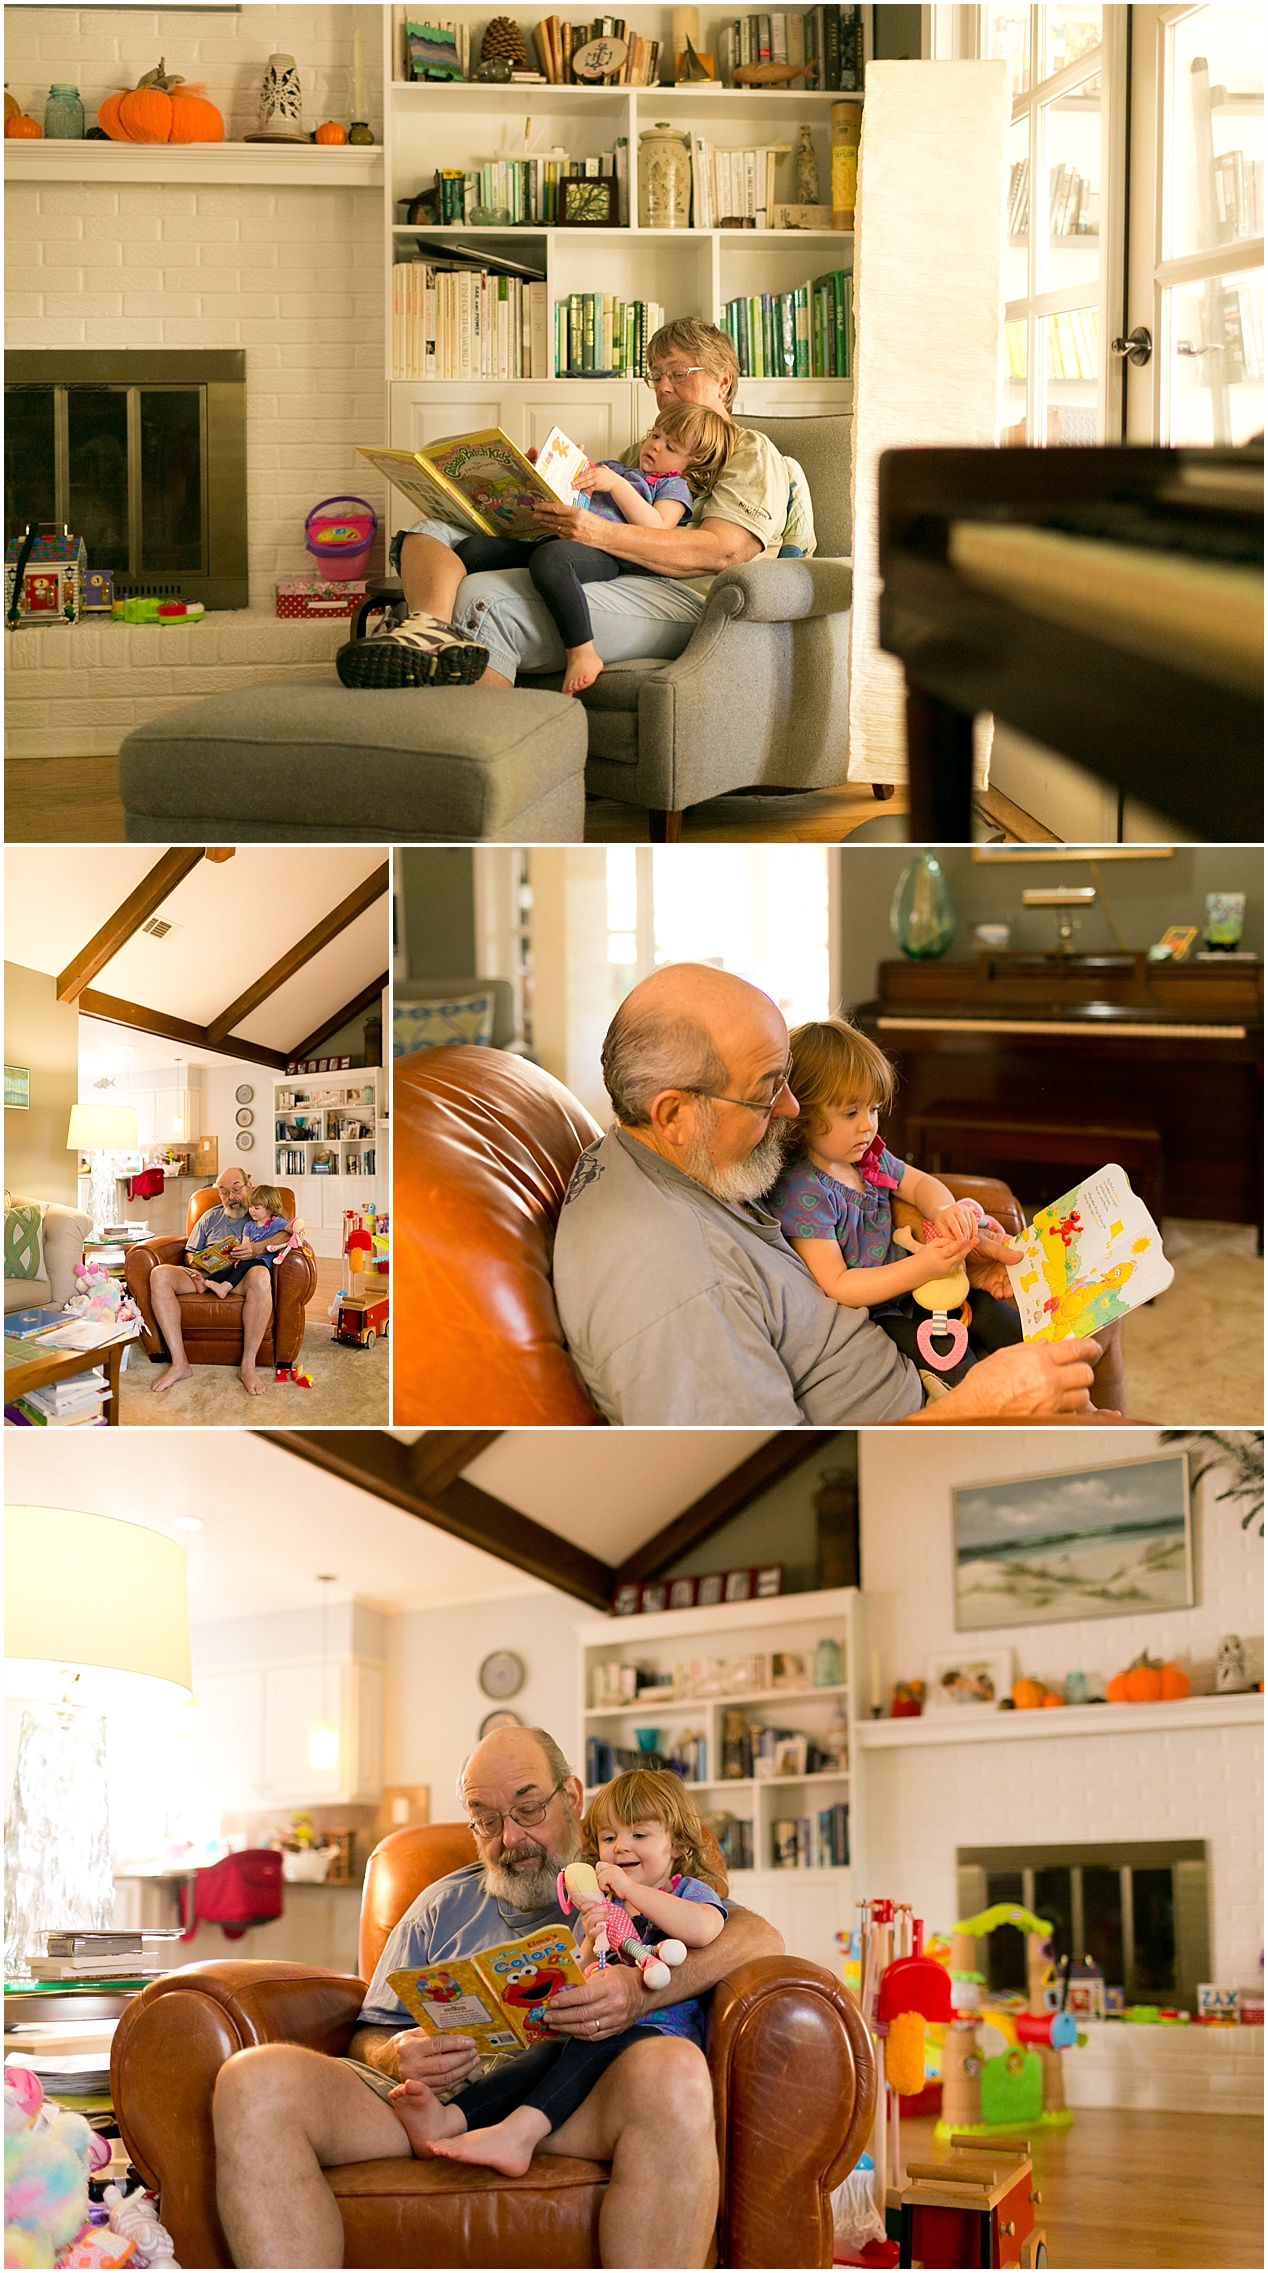 grandparents reading books to granddaughter, age 2